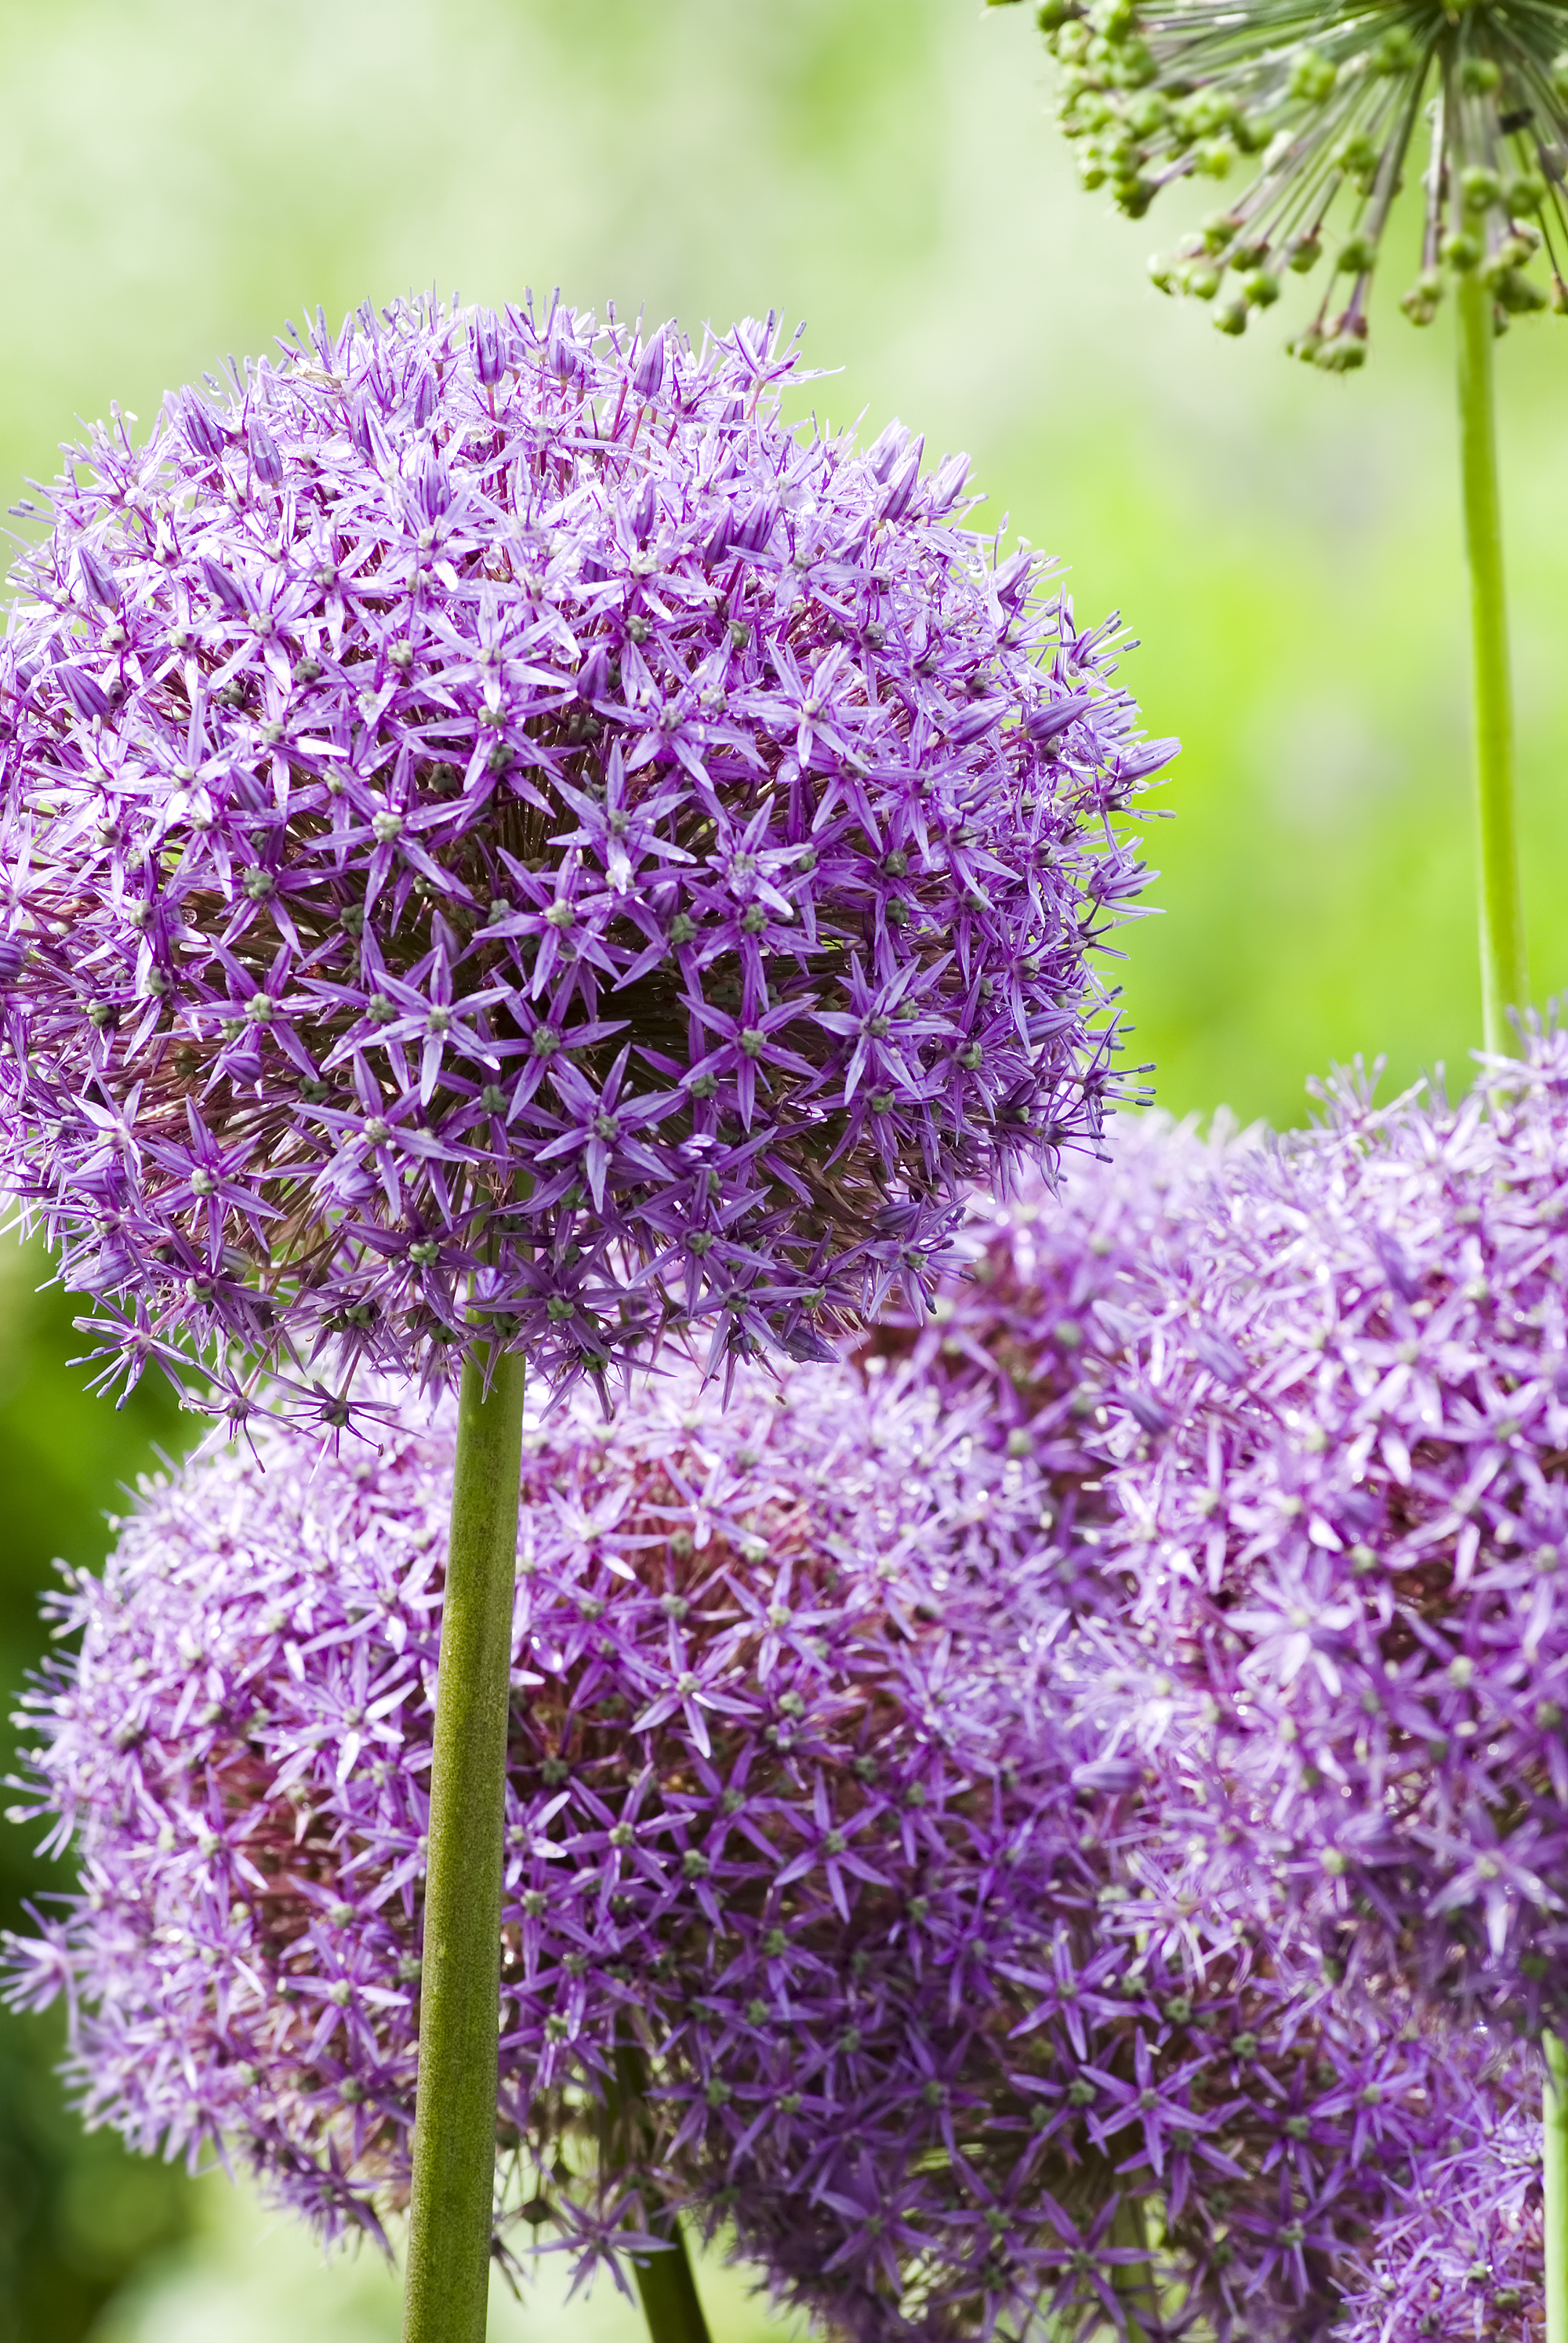 """Allium 'Globemaster' (Giant Allium) - Zone: 4-9Bloom size: 10"""" acrossHeight: 3-4'Plant: 6"""" deepSpace: 8"""" apartSun/Shade: Full sunBloom Time: May-JunePlacement: Plant with bearded iris, Siberian iris, peonies and other allium"""